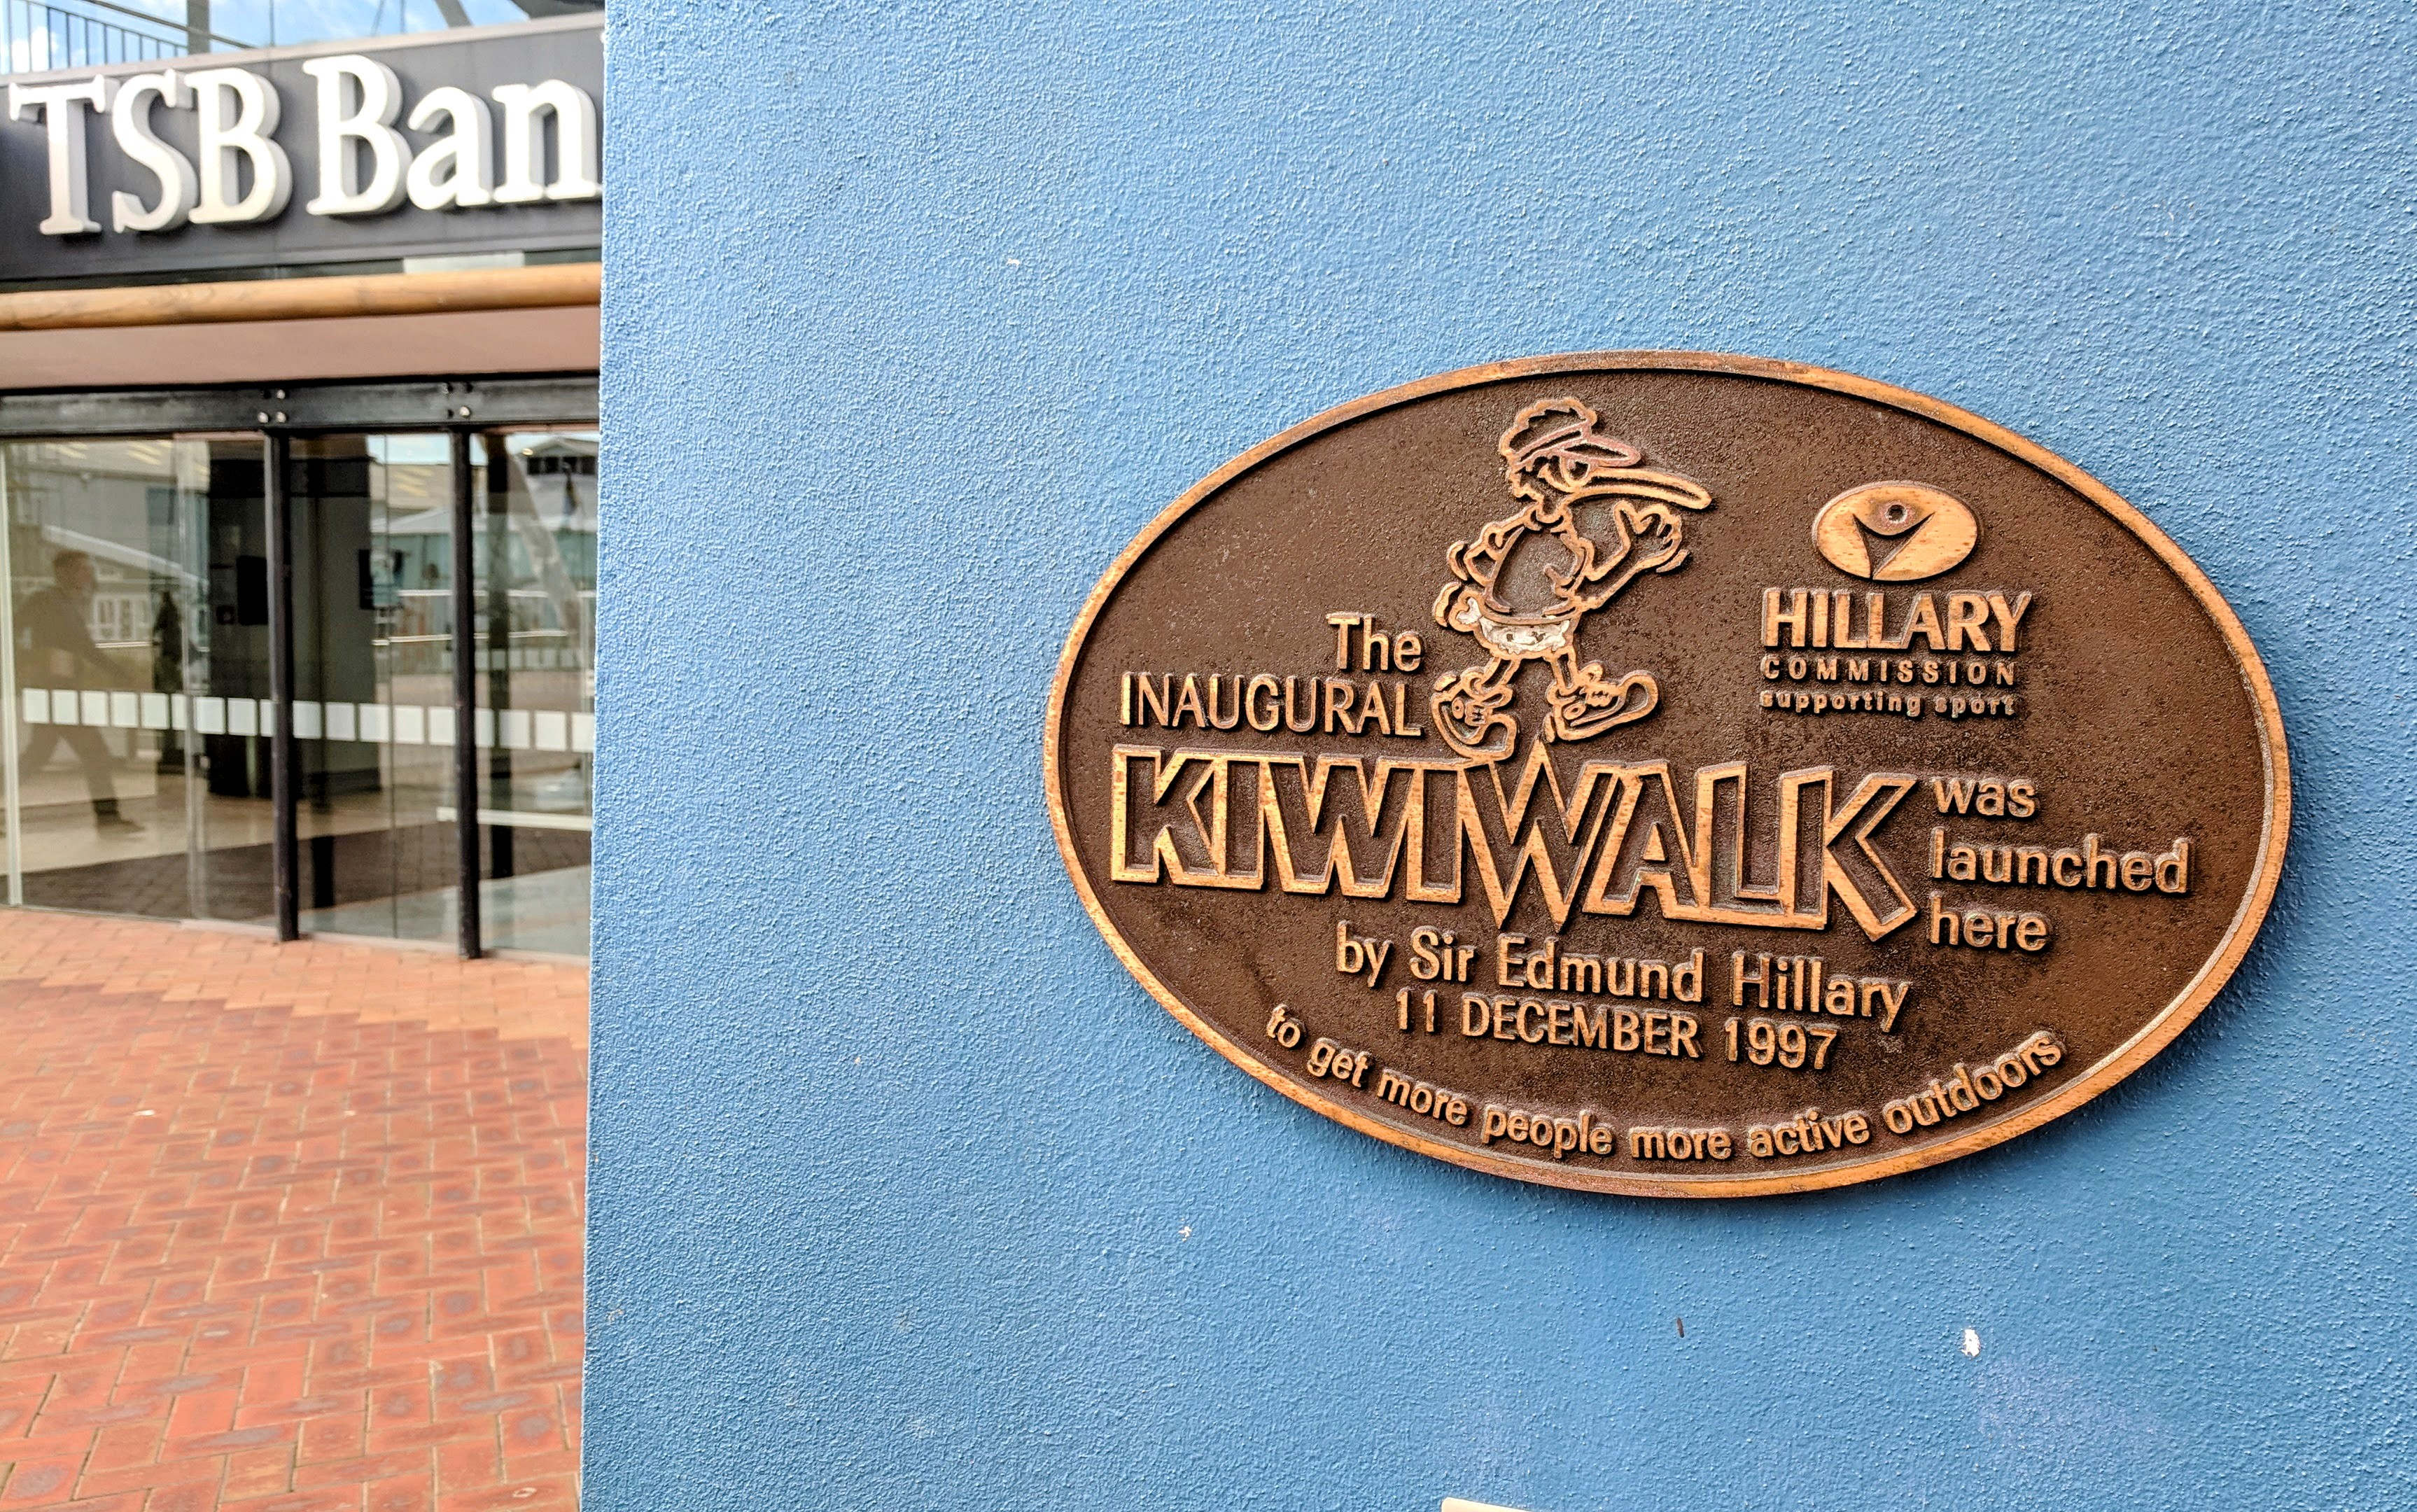 The INAUGURAL KIWIWALK was launched here by Sir Edmund Hillary 11 DECEMBER 1997 to get more people more active outdoors